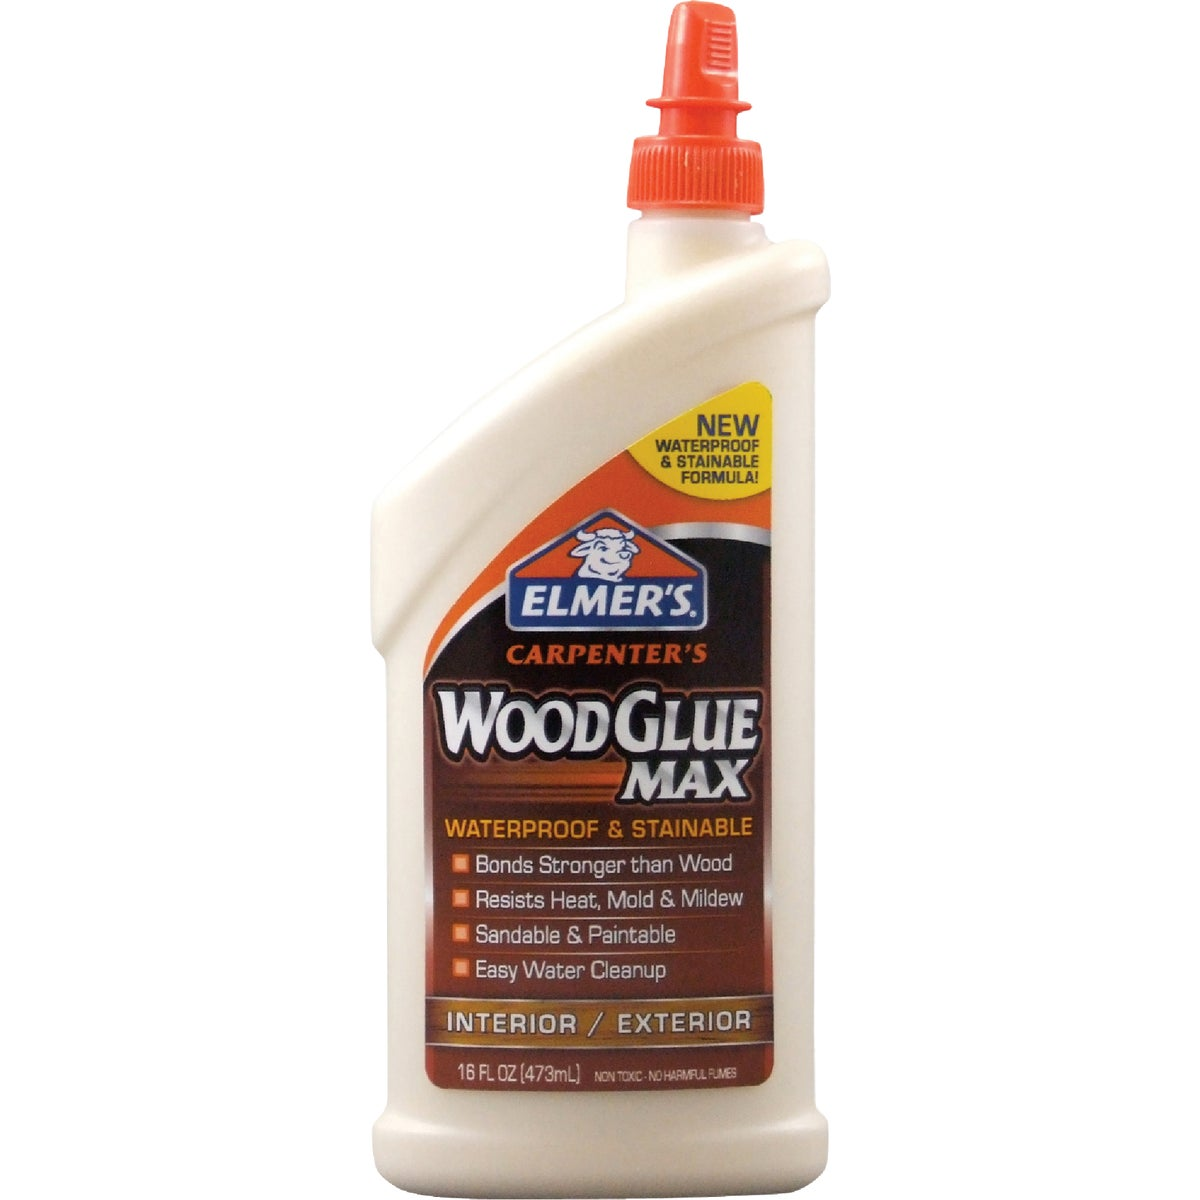 16OZ EXTERIOR WOOD GLUE